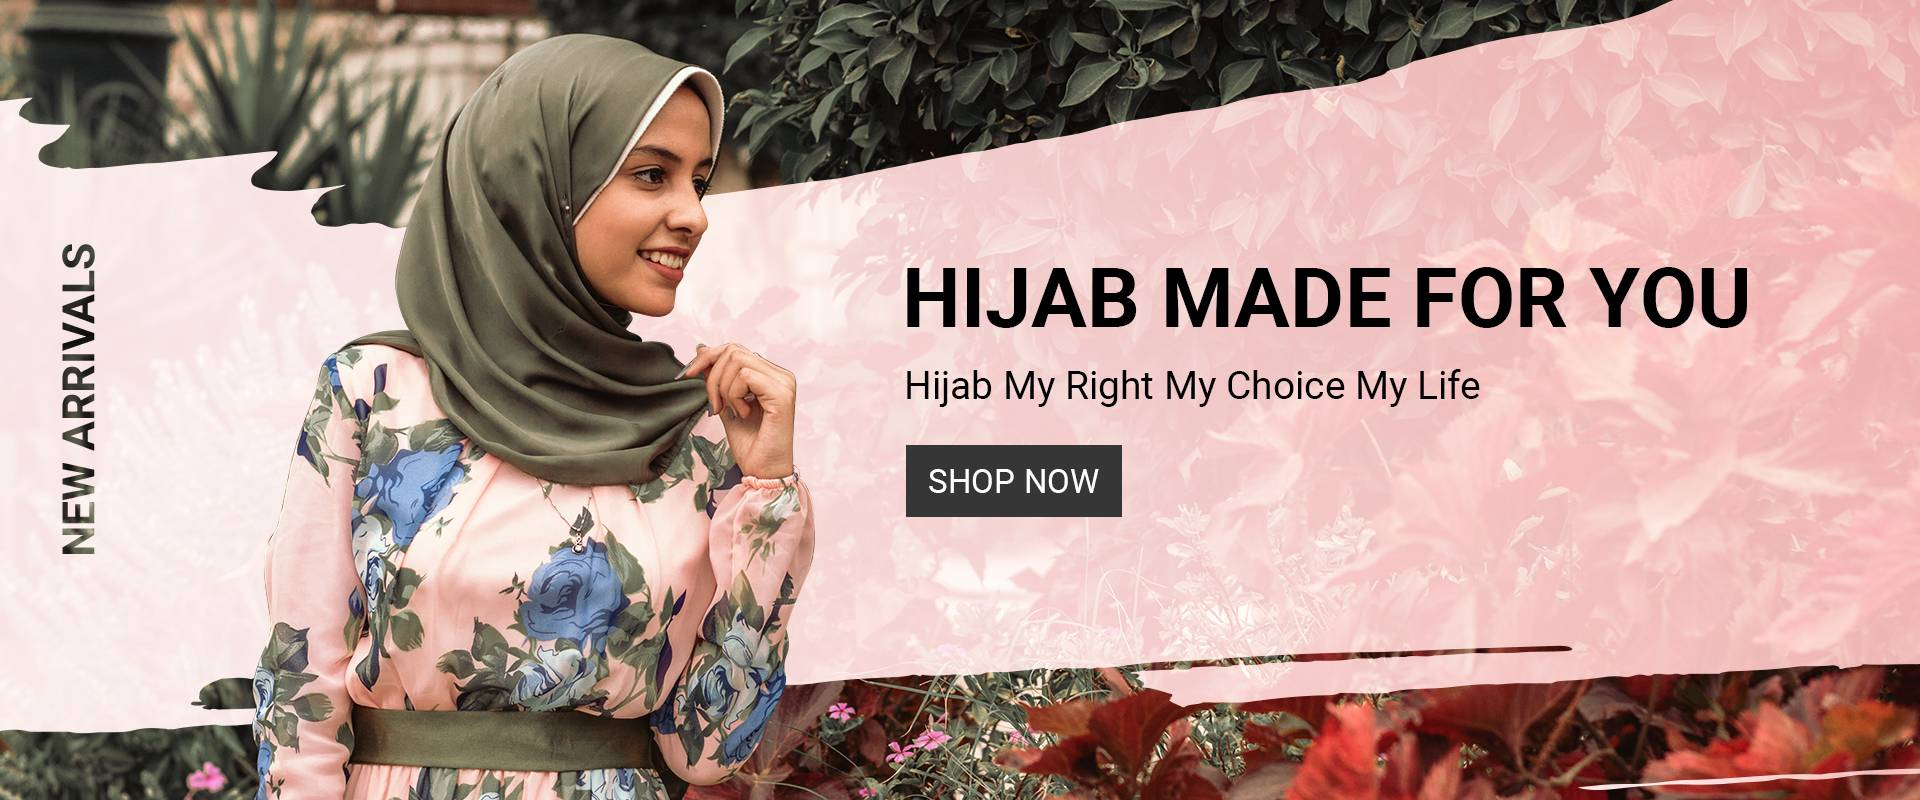 Hijab made for you